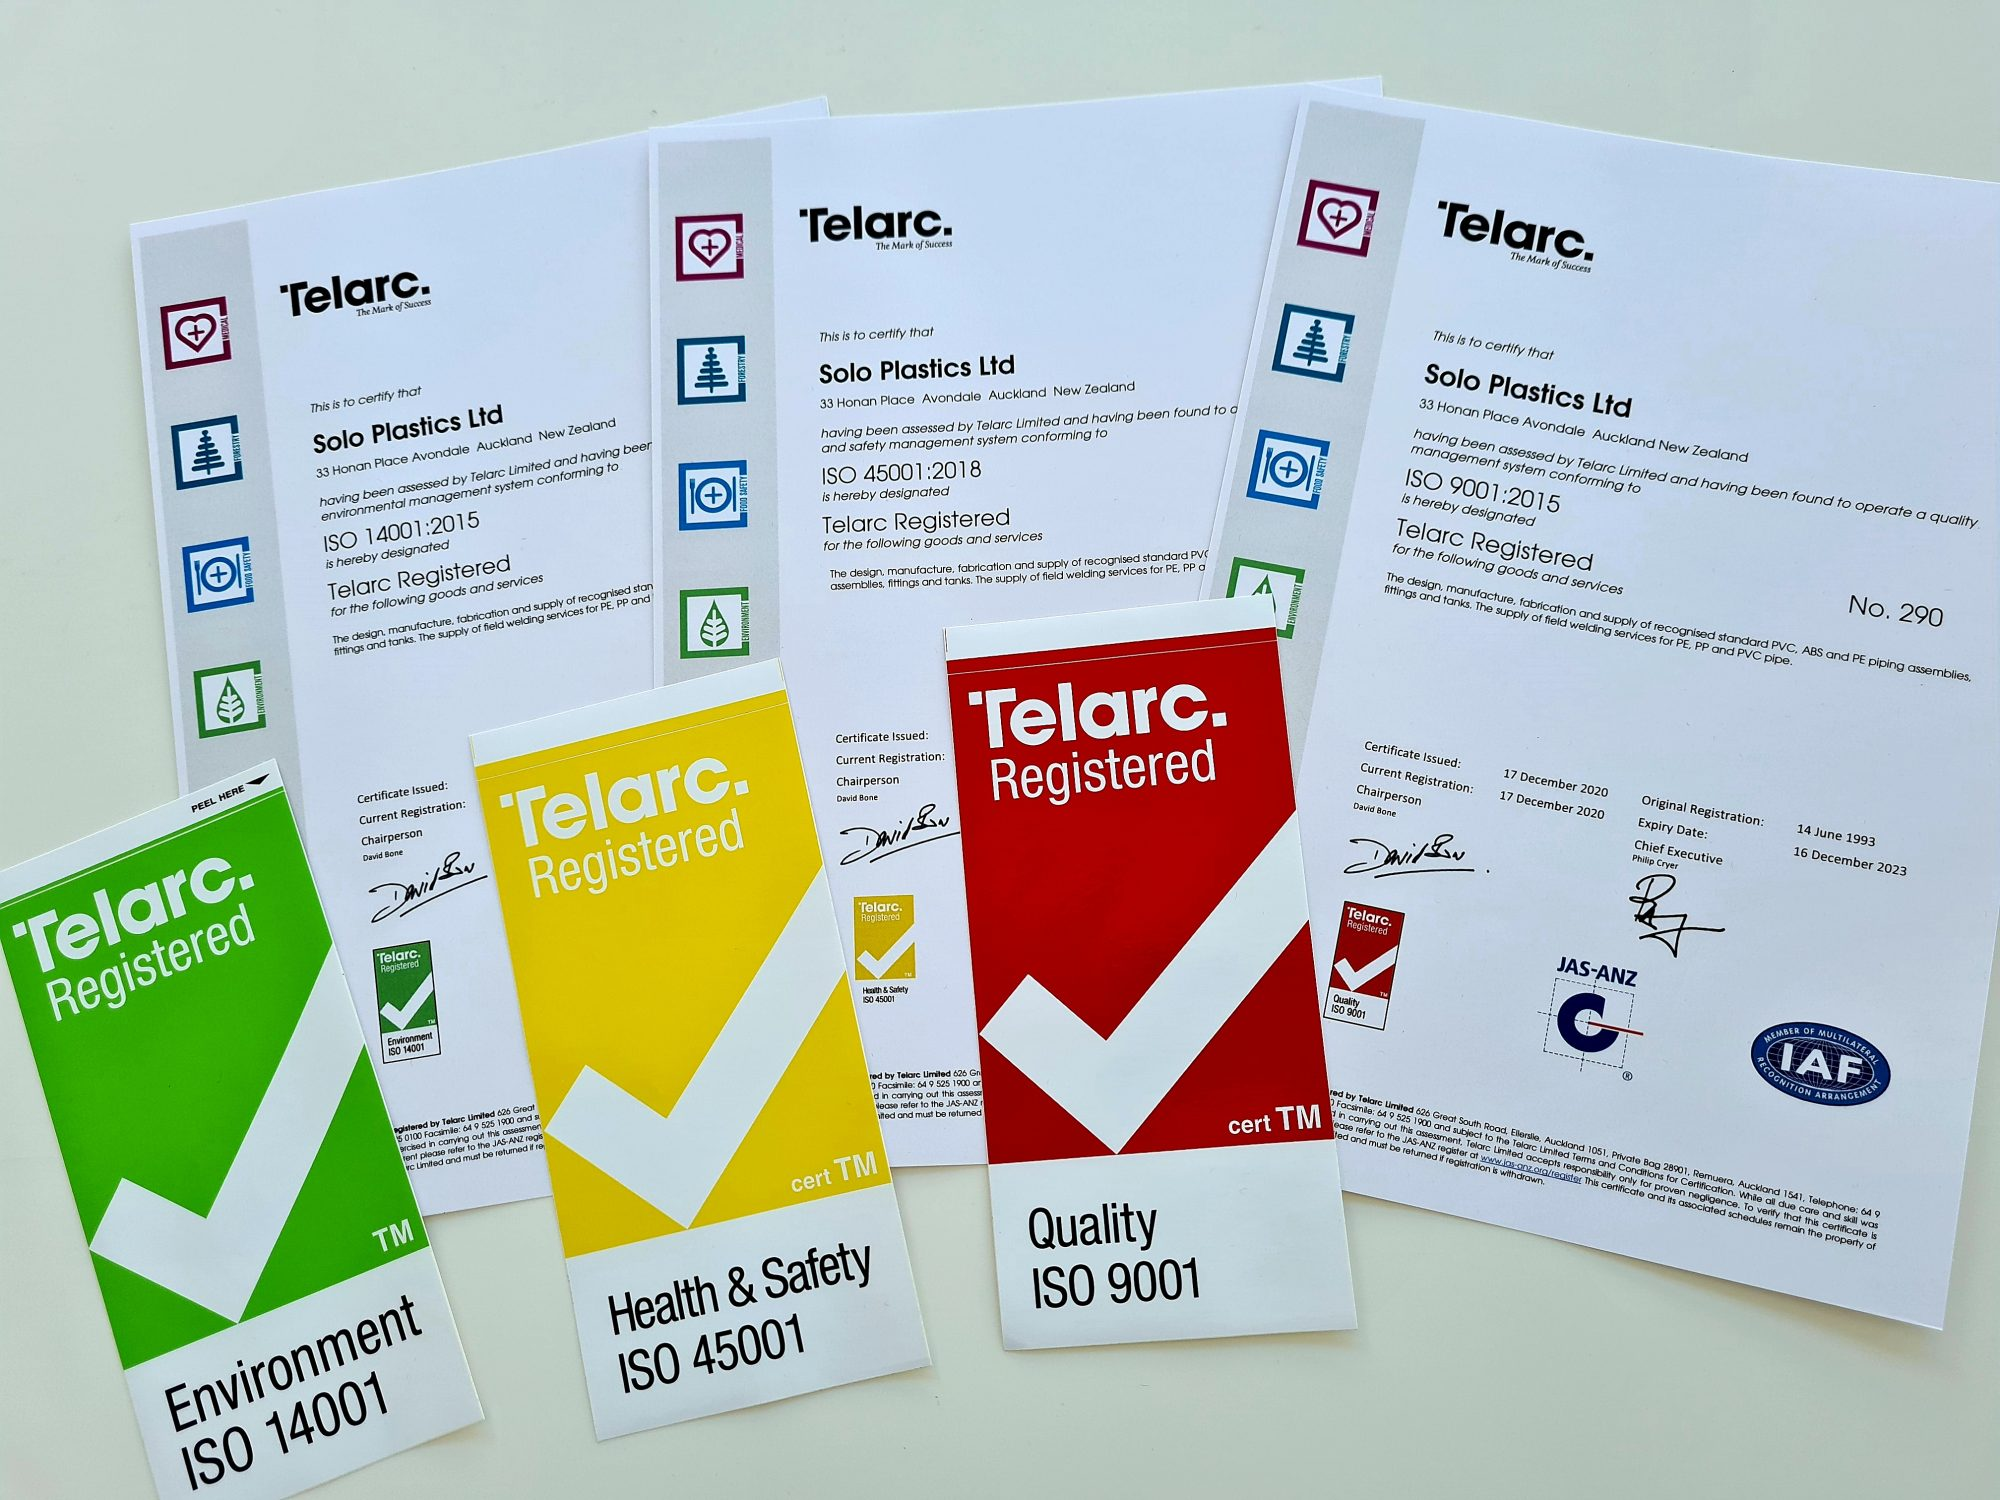 Triple ISO standards awarded to Solo Plastics through Telarc